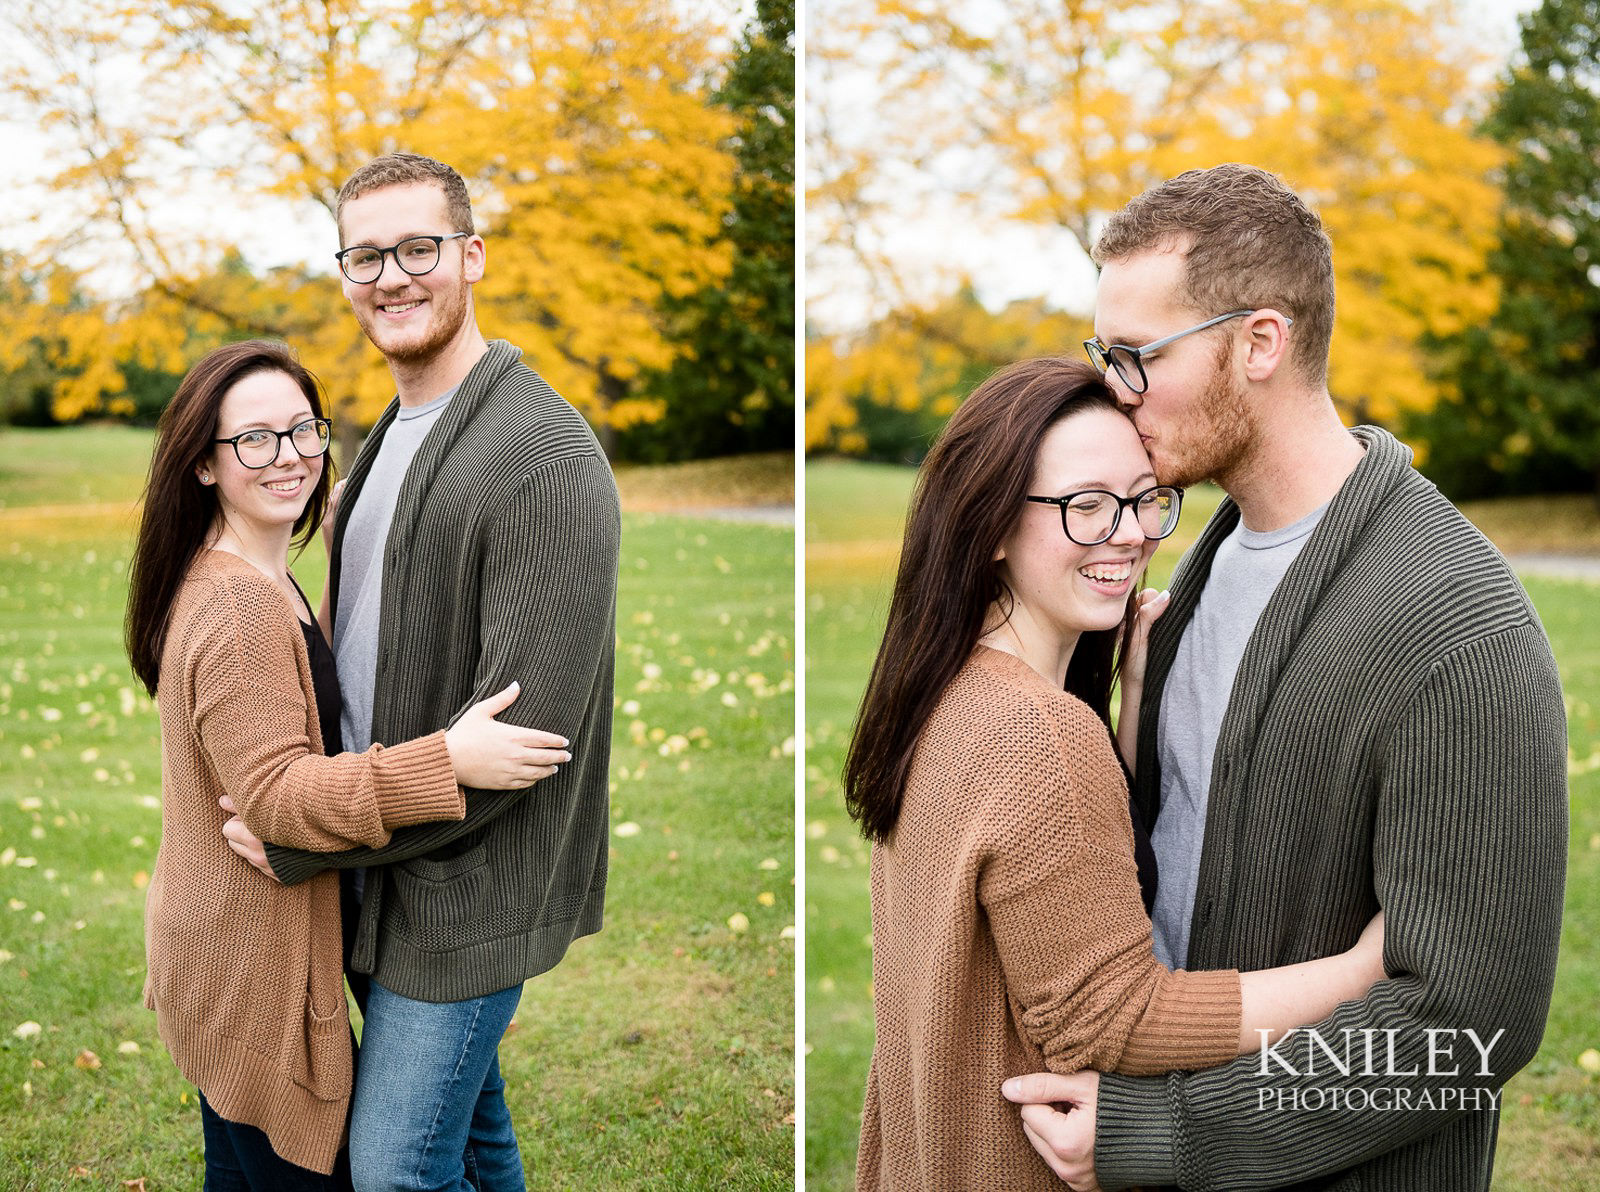 Highland Park Fall Engagement Session - Rochester NY - collage 8.jpg